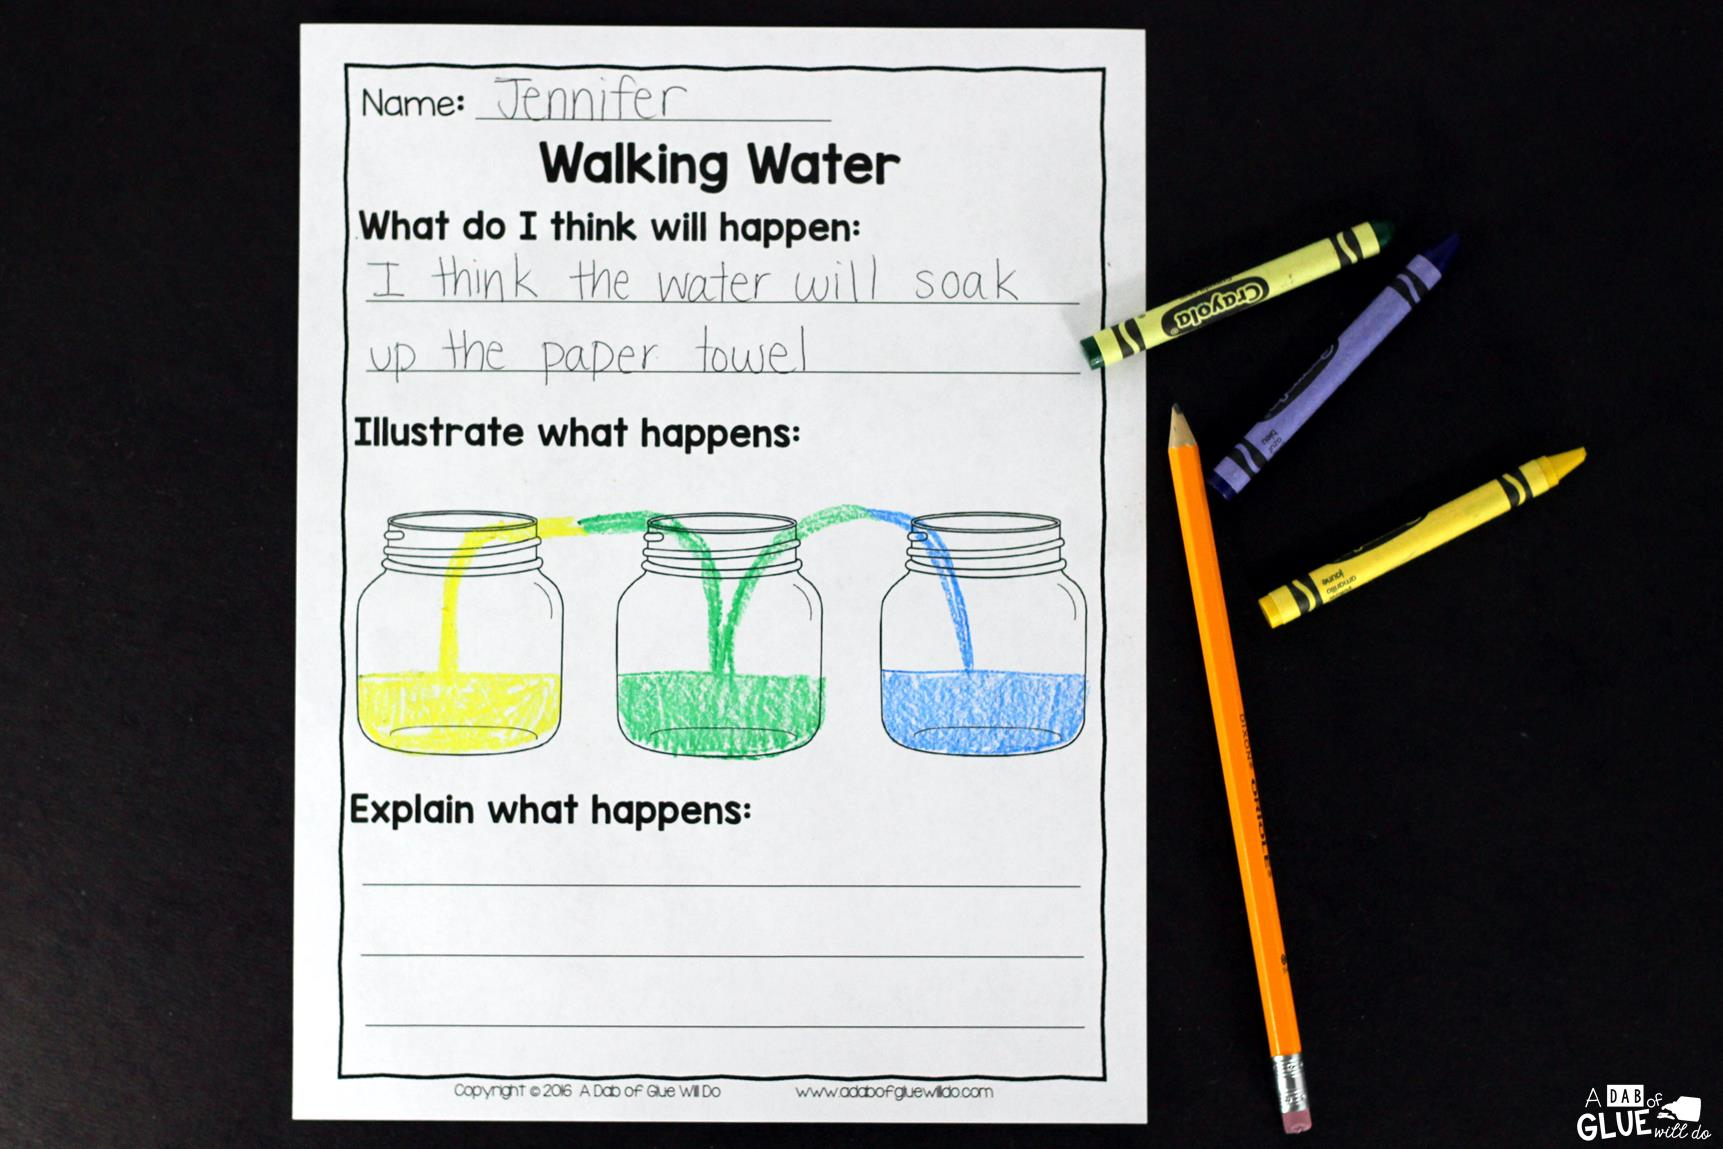 Walking Water Science Activity For Kids